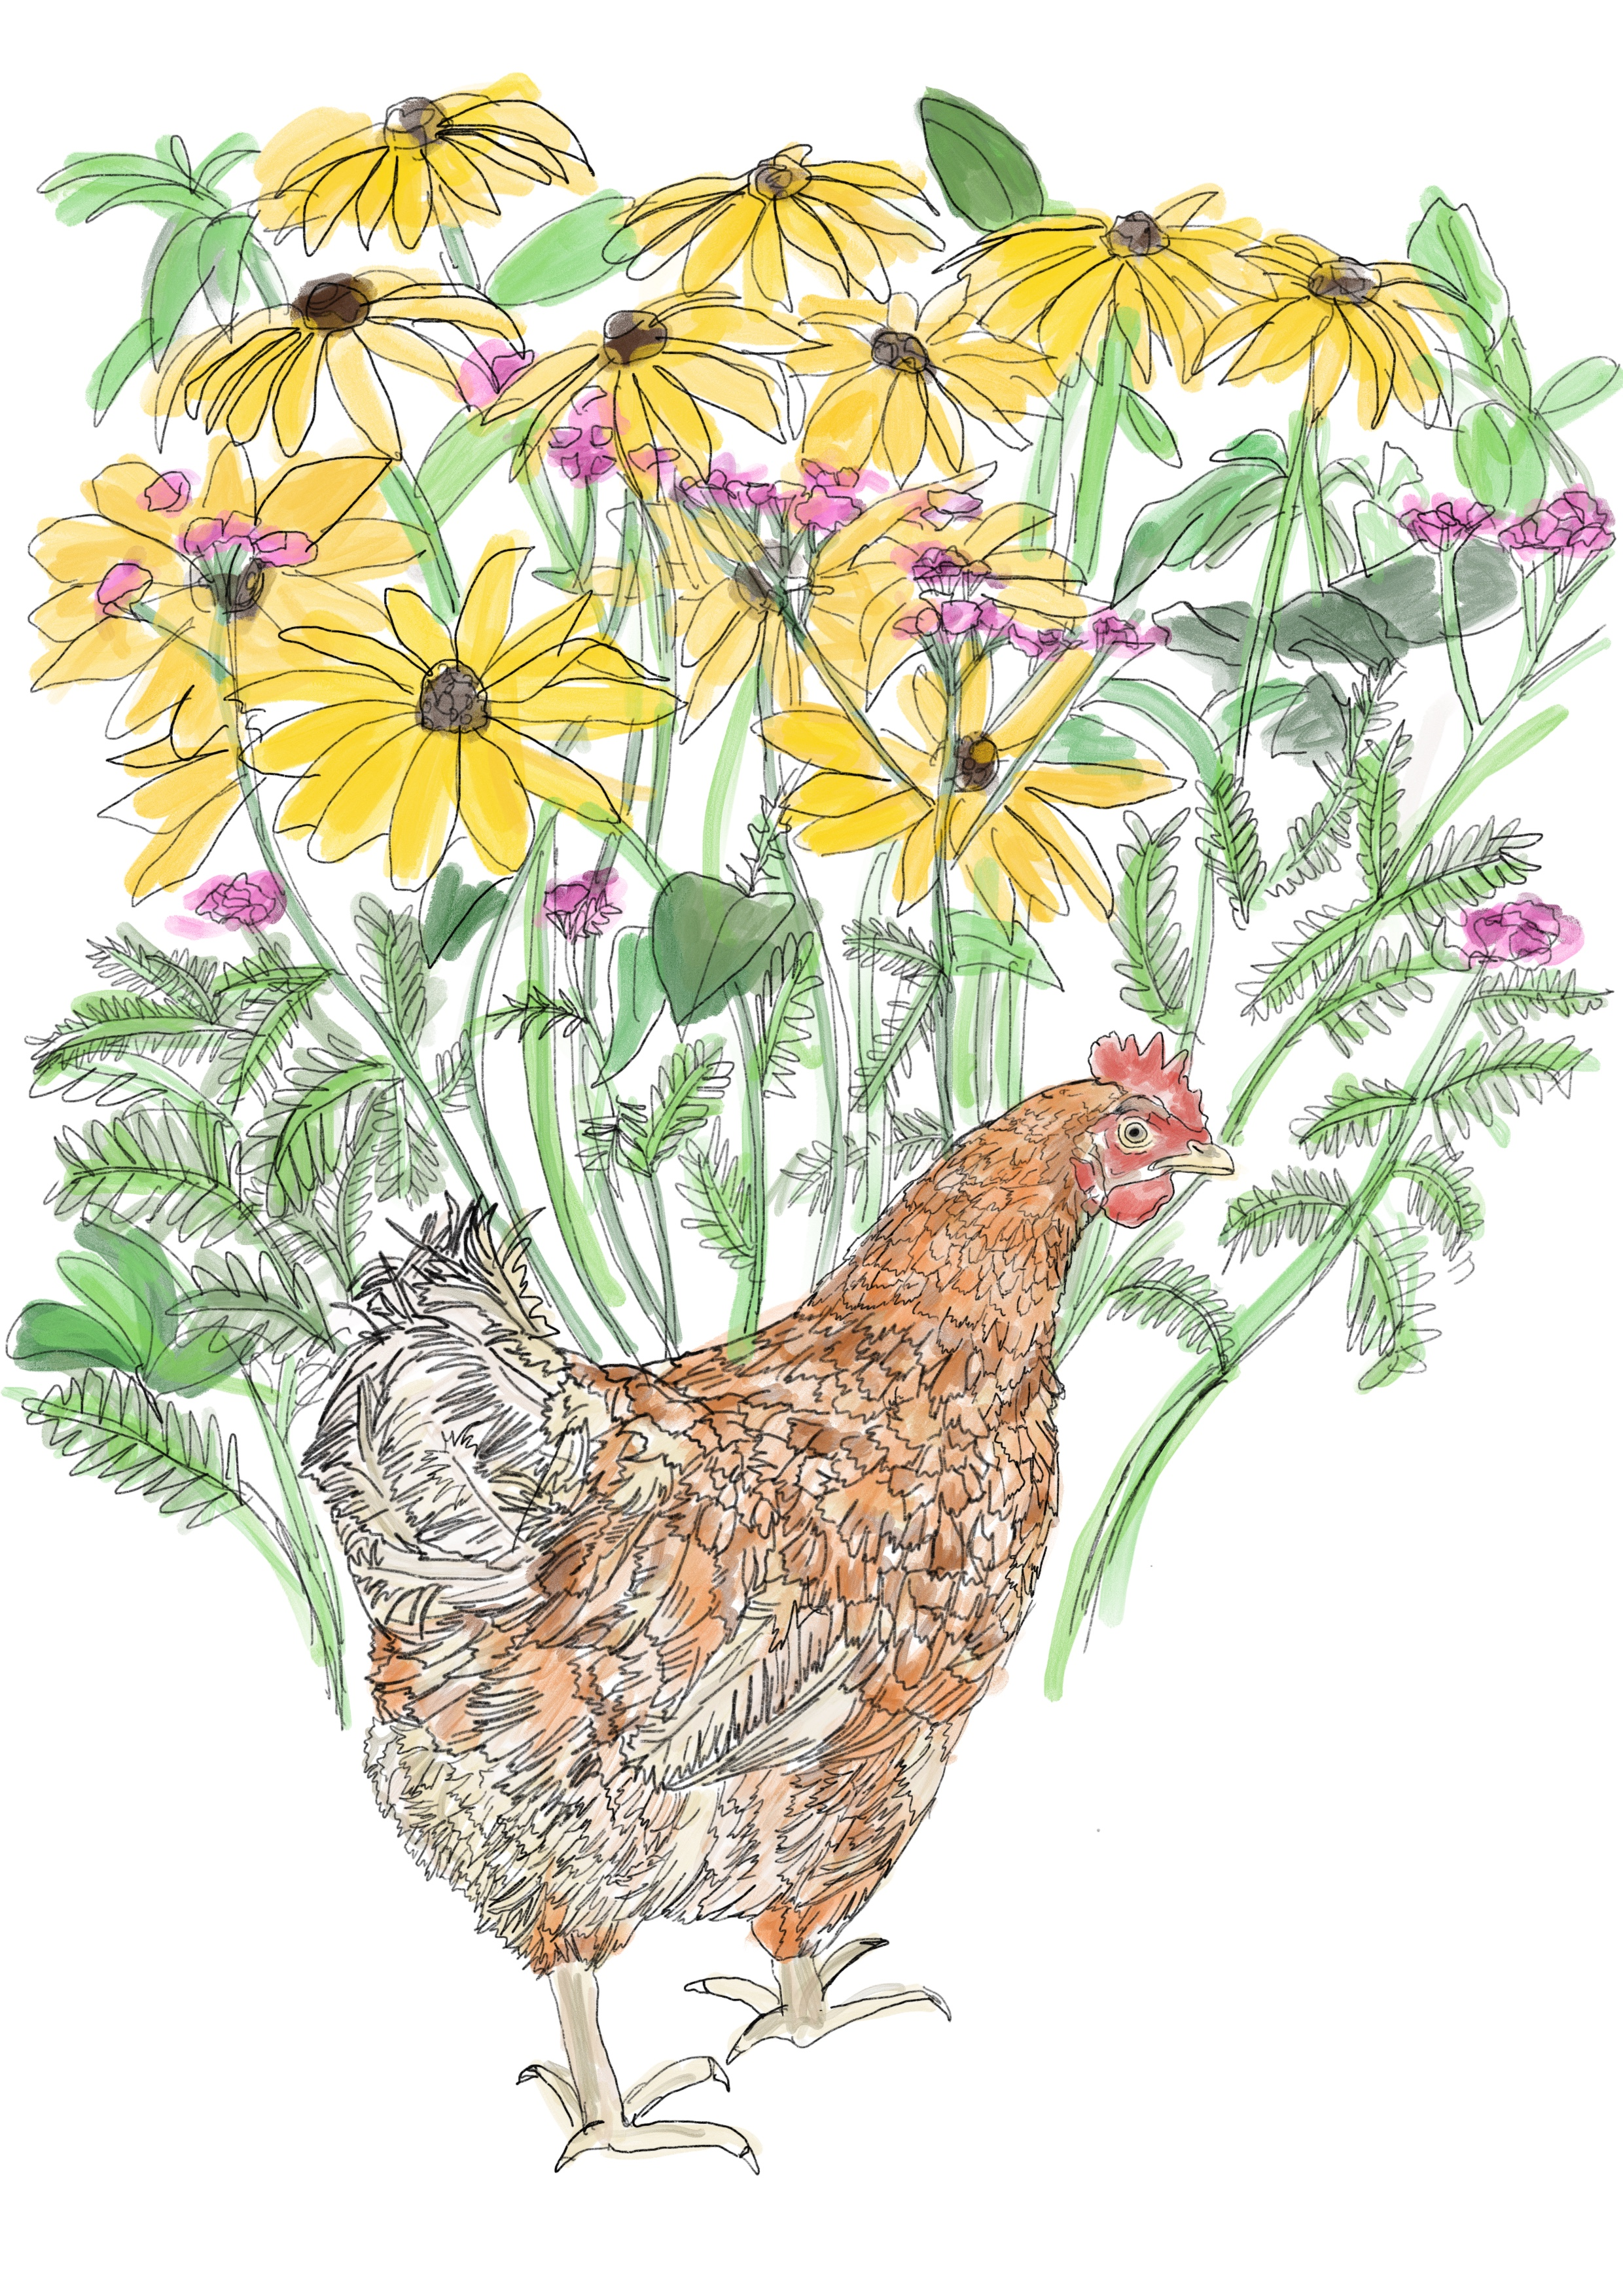 Another of Rachel's rescue Hen's, this one is called Ginger. Rachel can be found @thegoodlifeainteasy on Instagram and FB